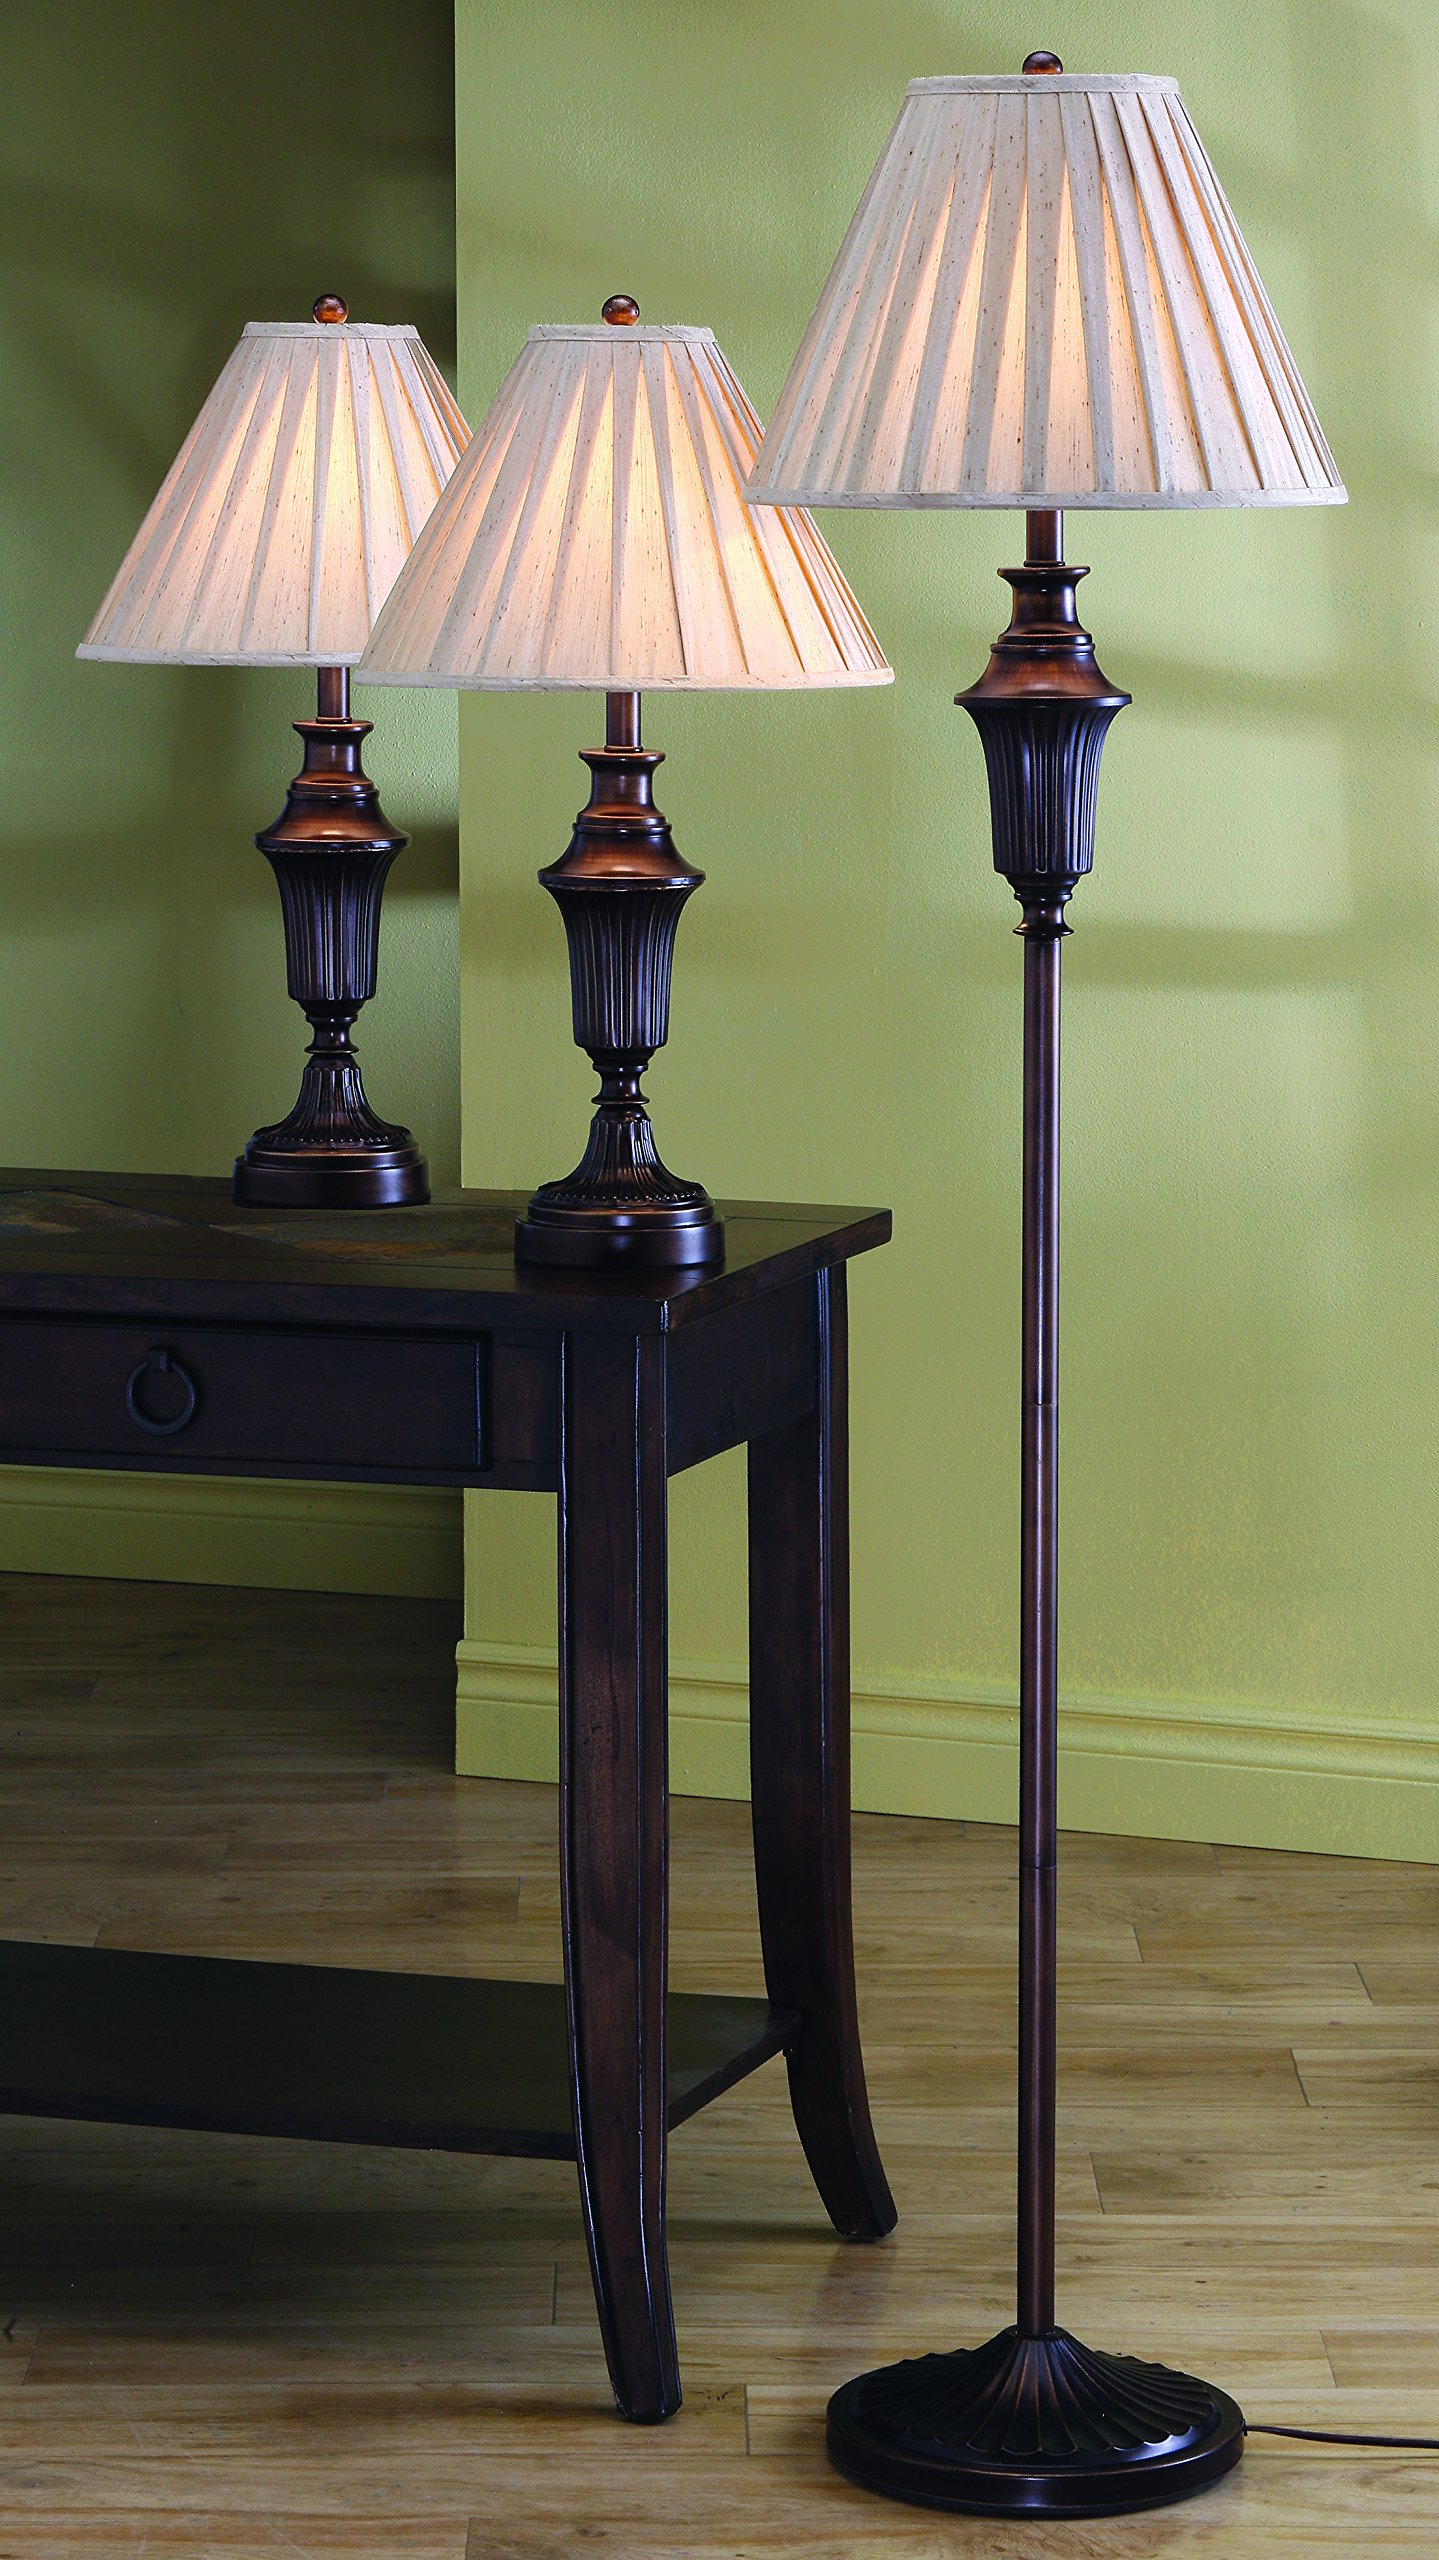 2 Table Lamps And 1 Floor Lamp Dark Brown Finish 3 Piece